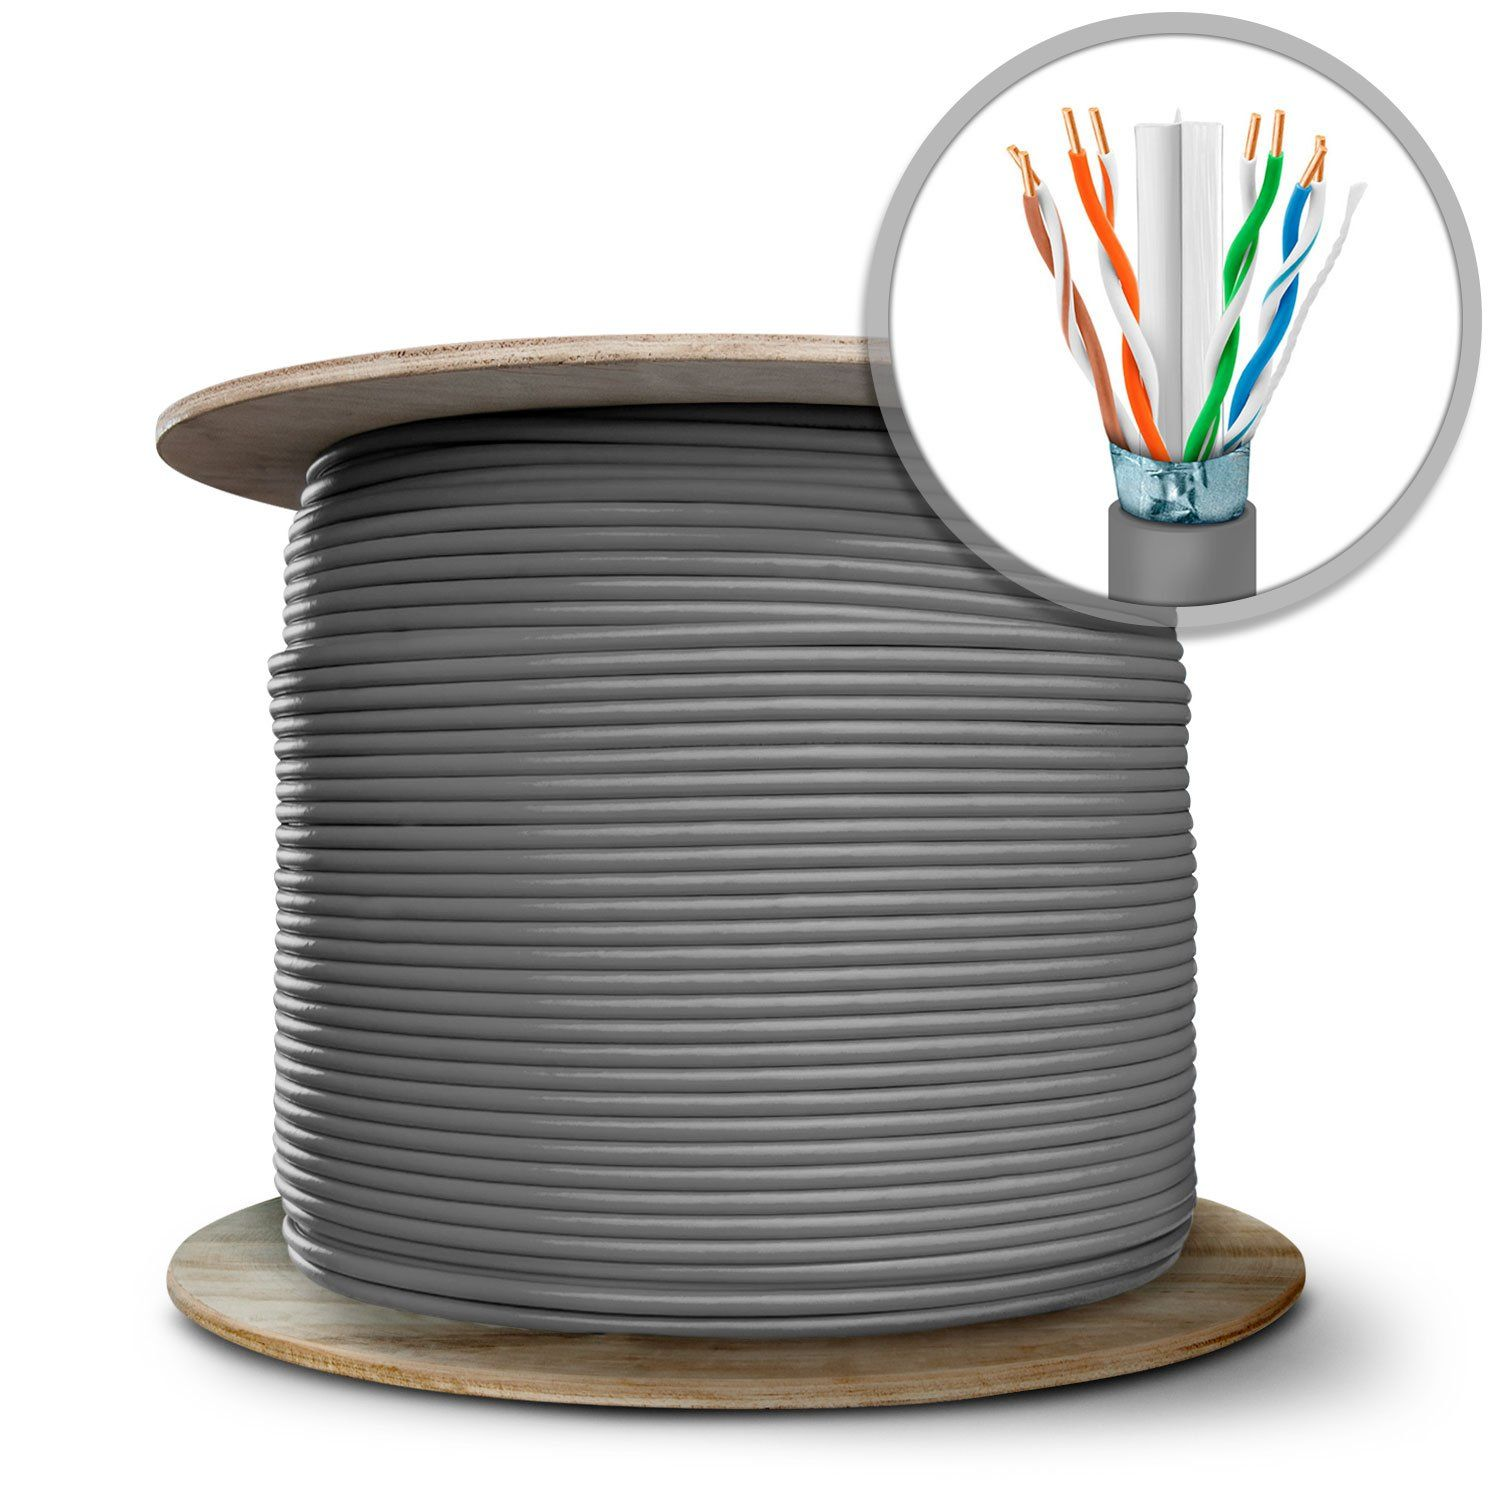 GearIT 1000 Feet Bulk Cat6 STP Ethernet Cable - Solid Twisted Pair ...